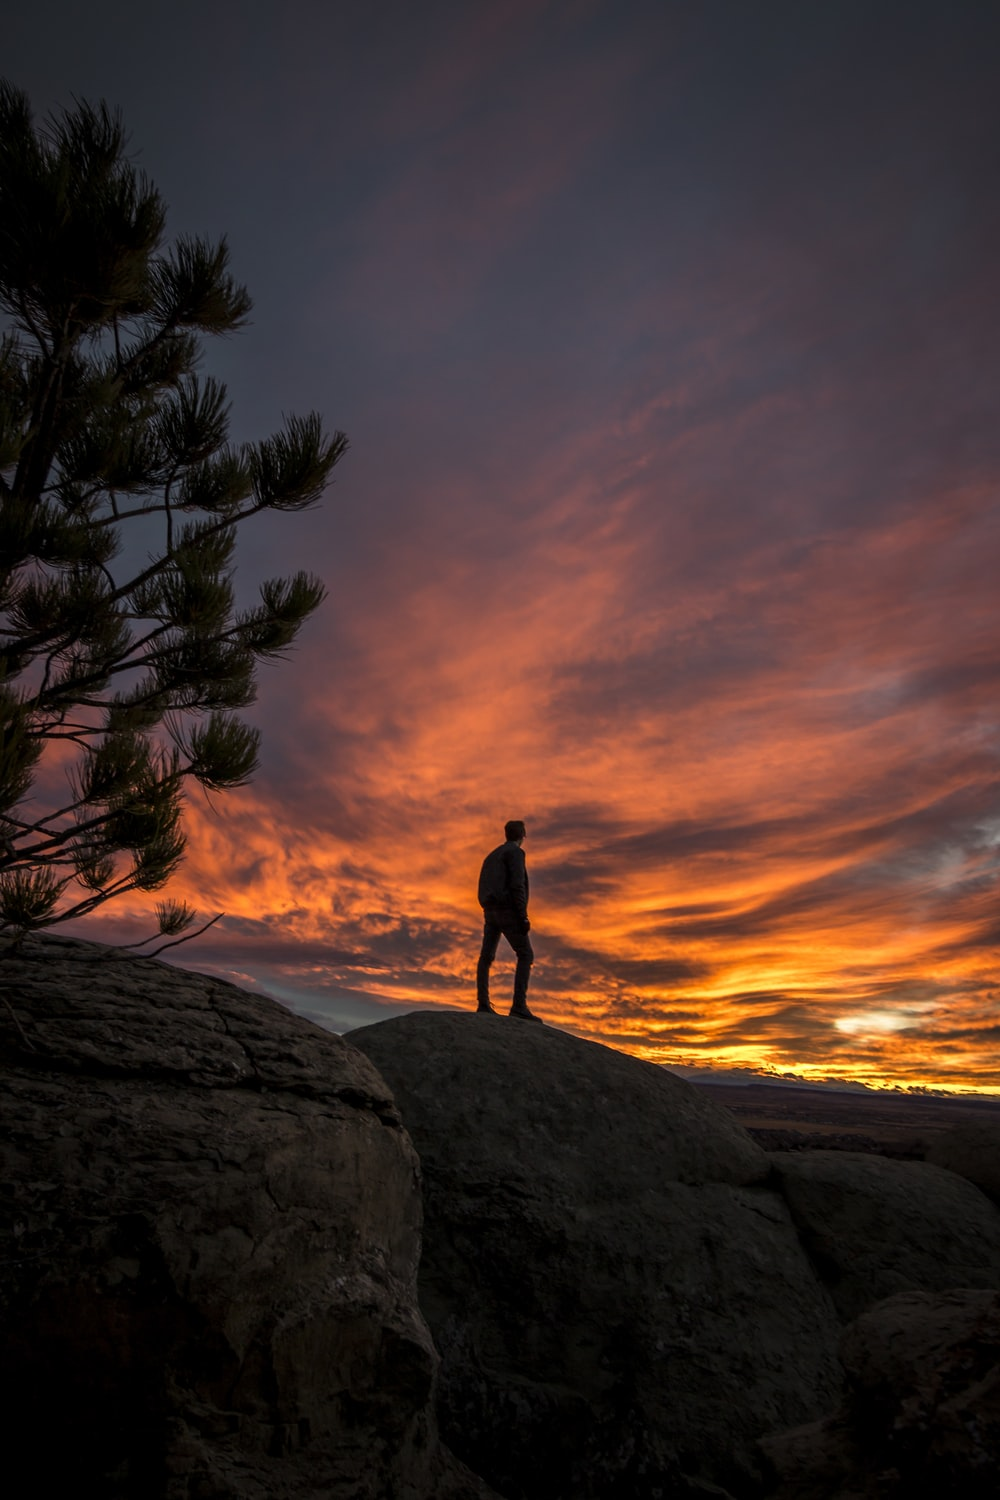 time lapse photography of person standing on cliff silhouette under golden hour